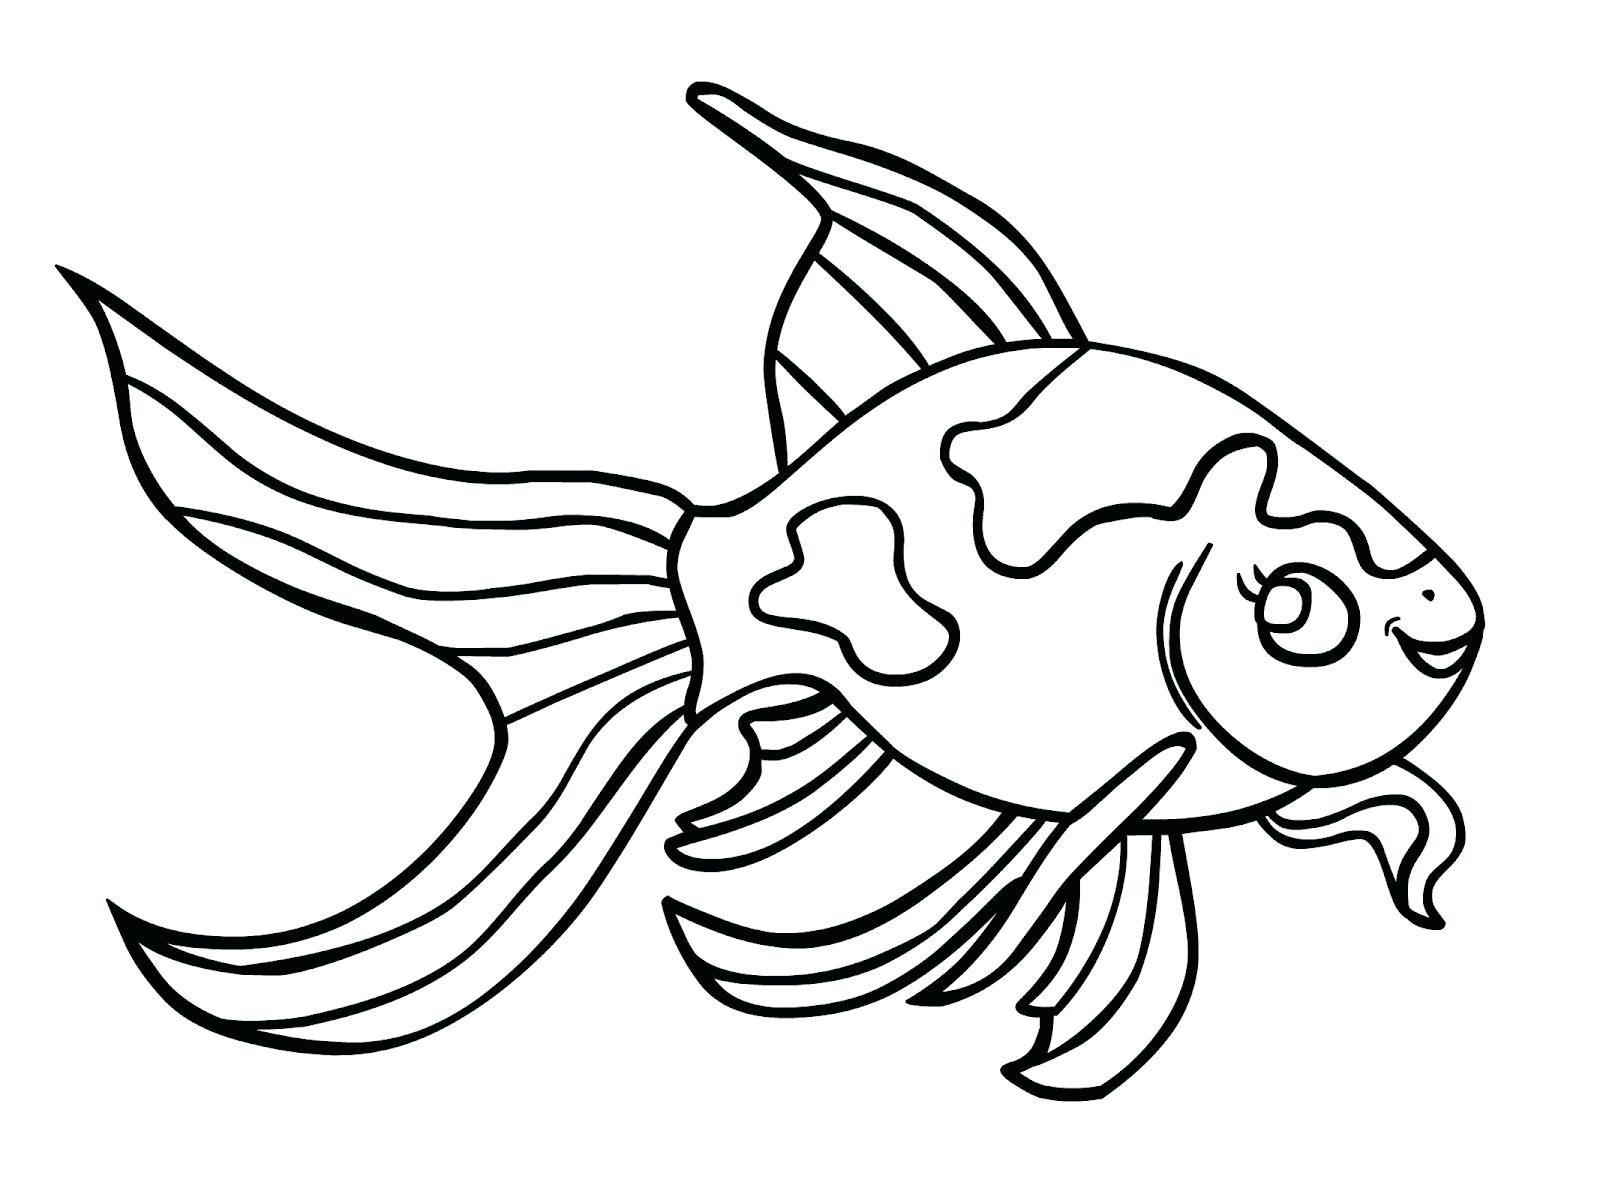 1600x1200 Fishing Rod Coloring Page Outline Drawings Of Fish Free Download